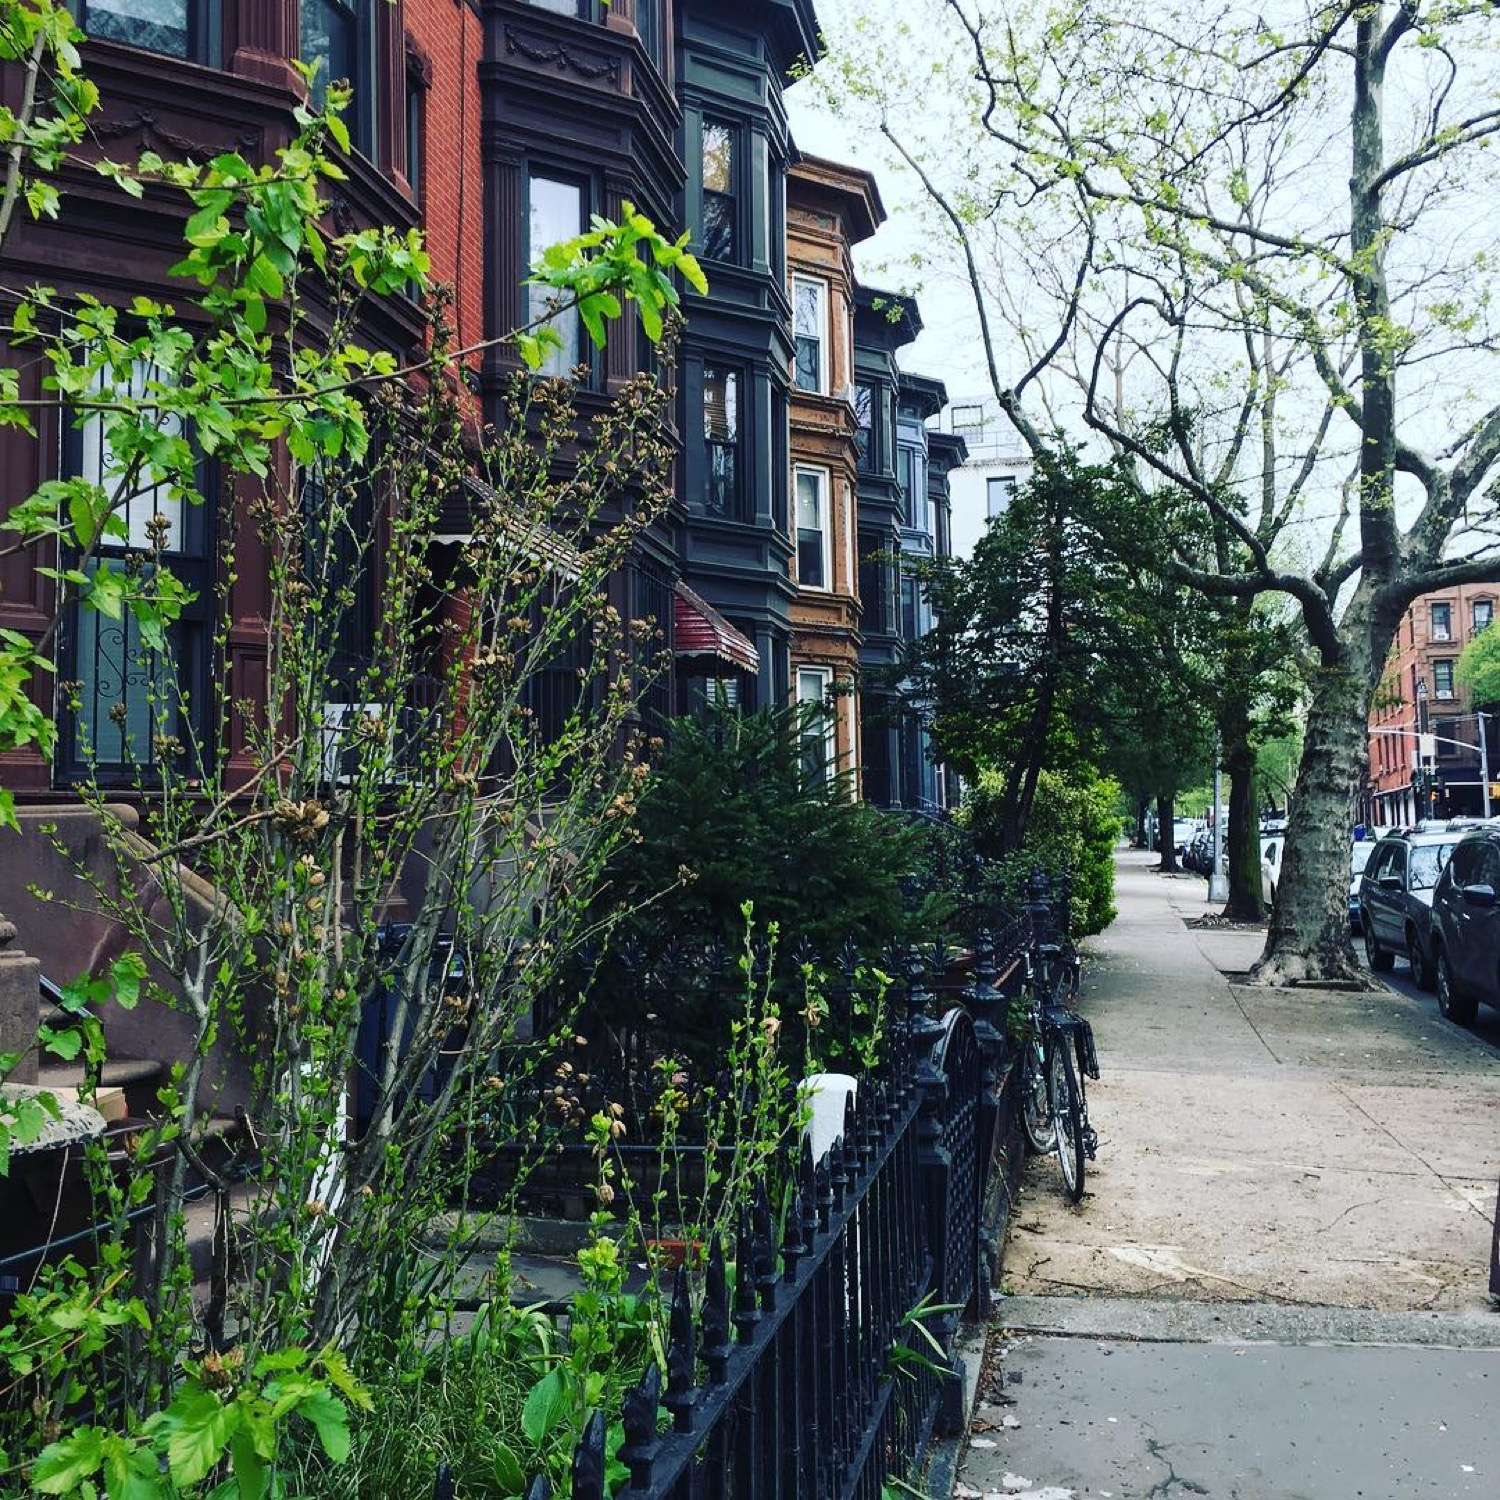 PLACE: Park Slope, Brooklyn / MILES FROM CINCY: 636 / ABOUT: Park Slope is walkable, historic, and absolutely lovely. It is the embodiment of a picturesque American urban landscape. / Image courtesy of Instagram user @margelsn // Published: 5.14.17